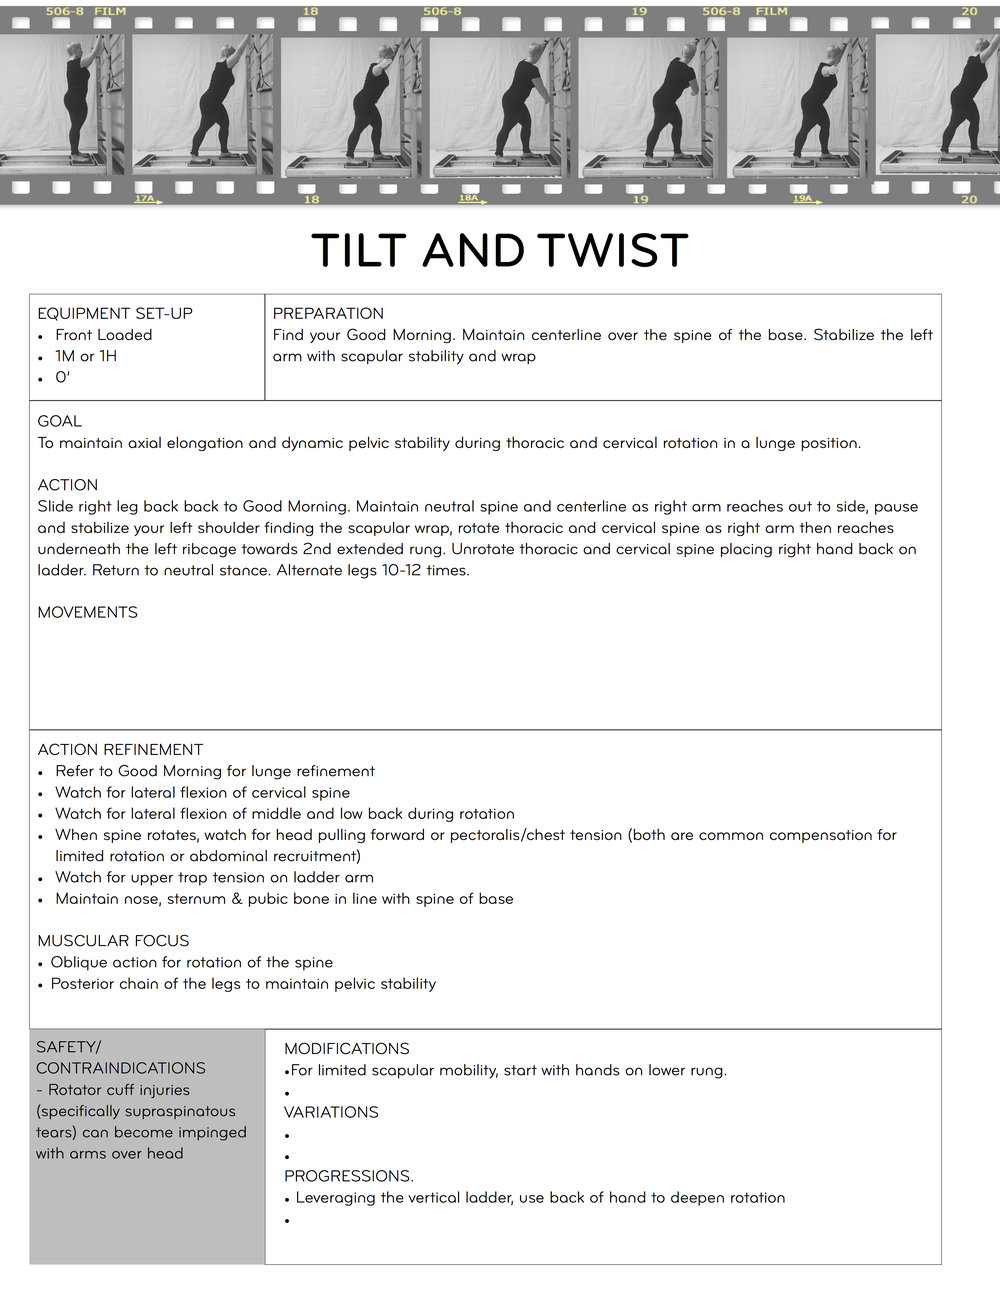 2. TILT & TWIST (entered in complete manual).jpg